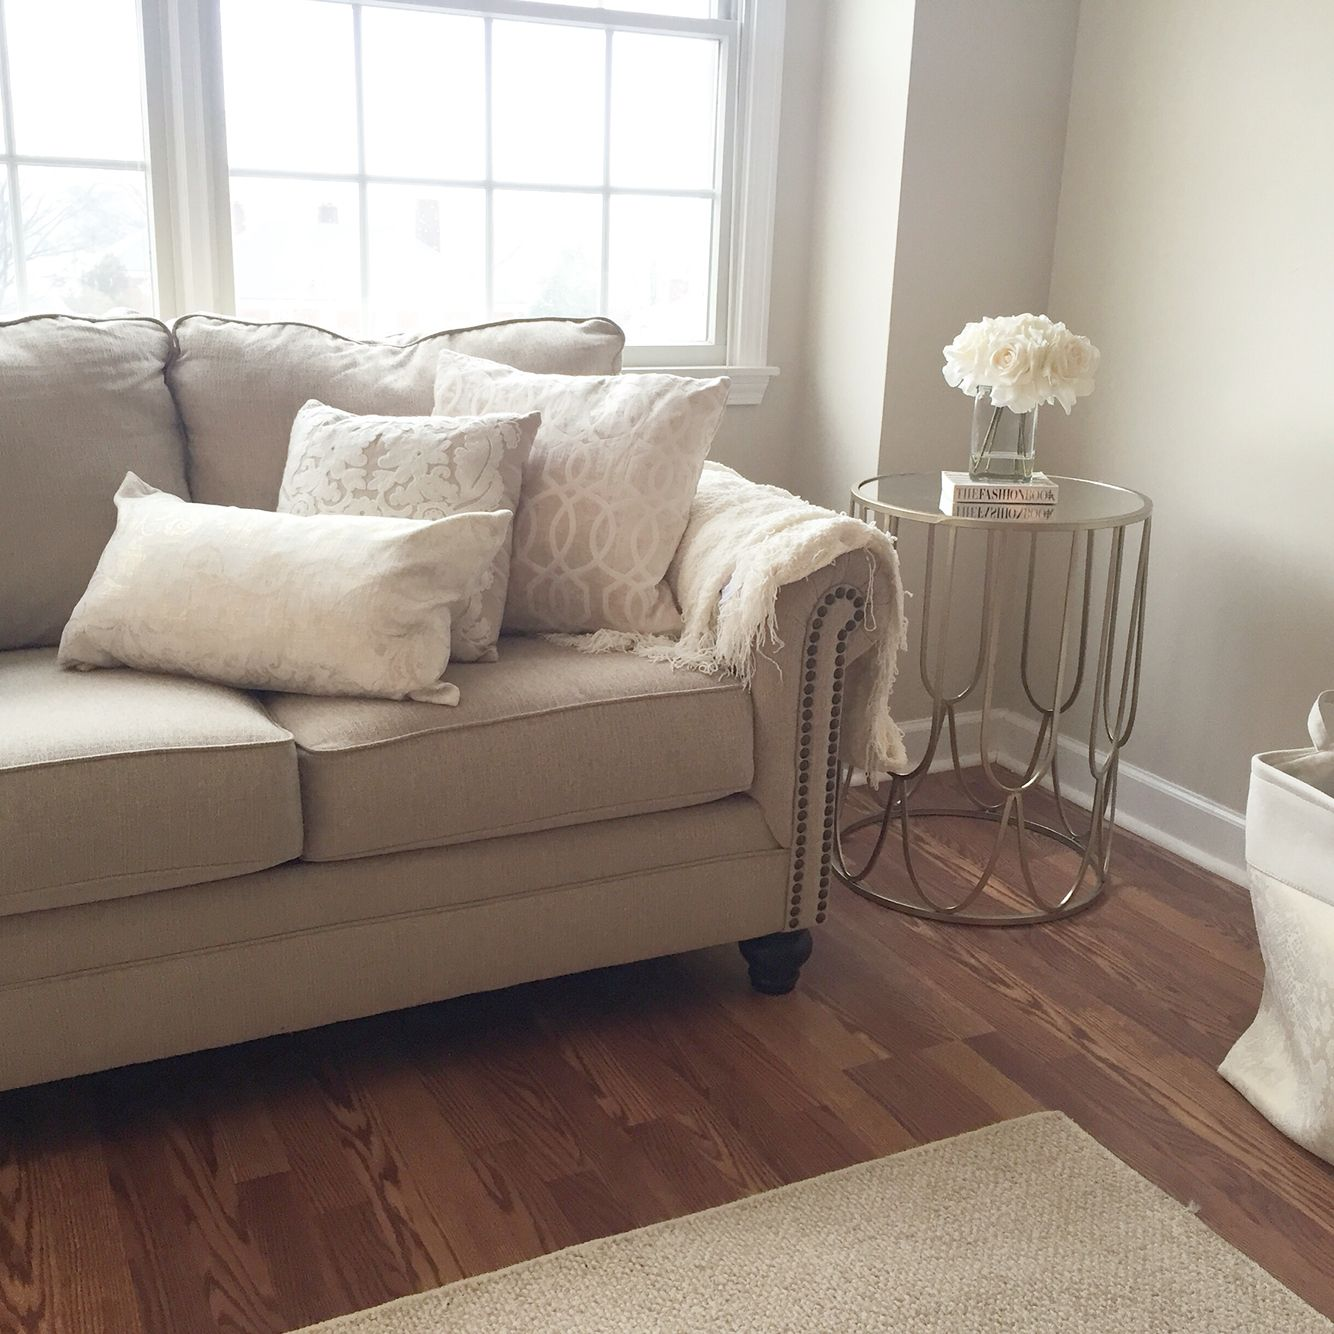 Cozy living room warm beige and whites paint color calico cream sherwin williams milari sofa - Small space sectional couches paint ...